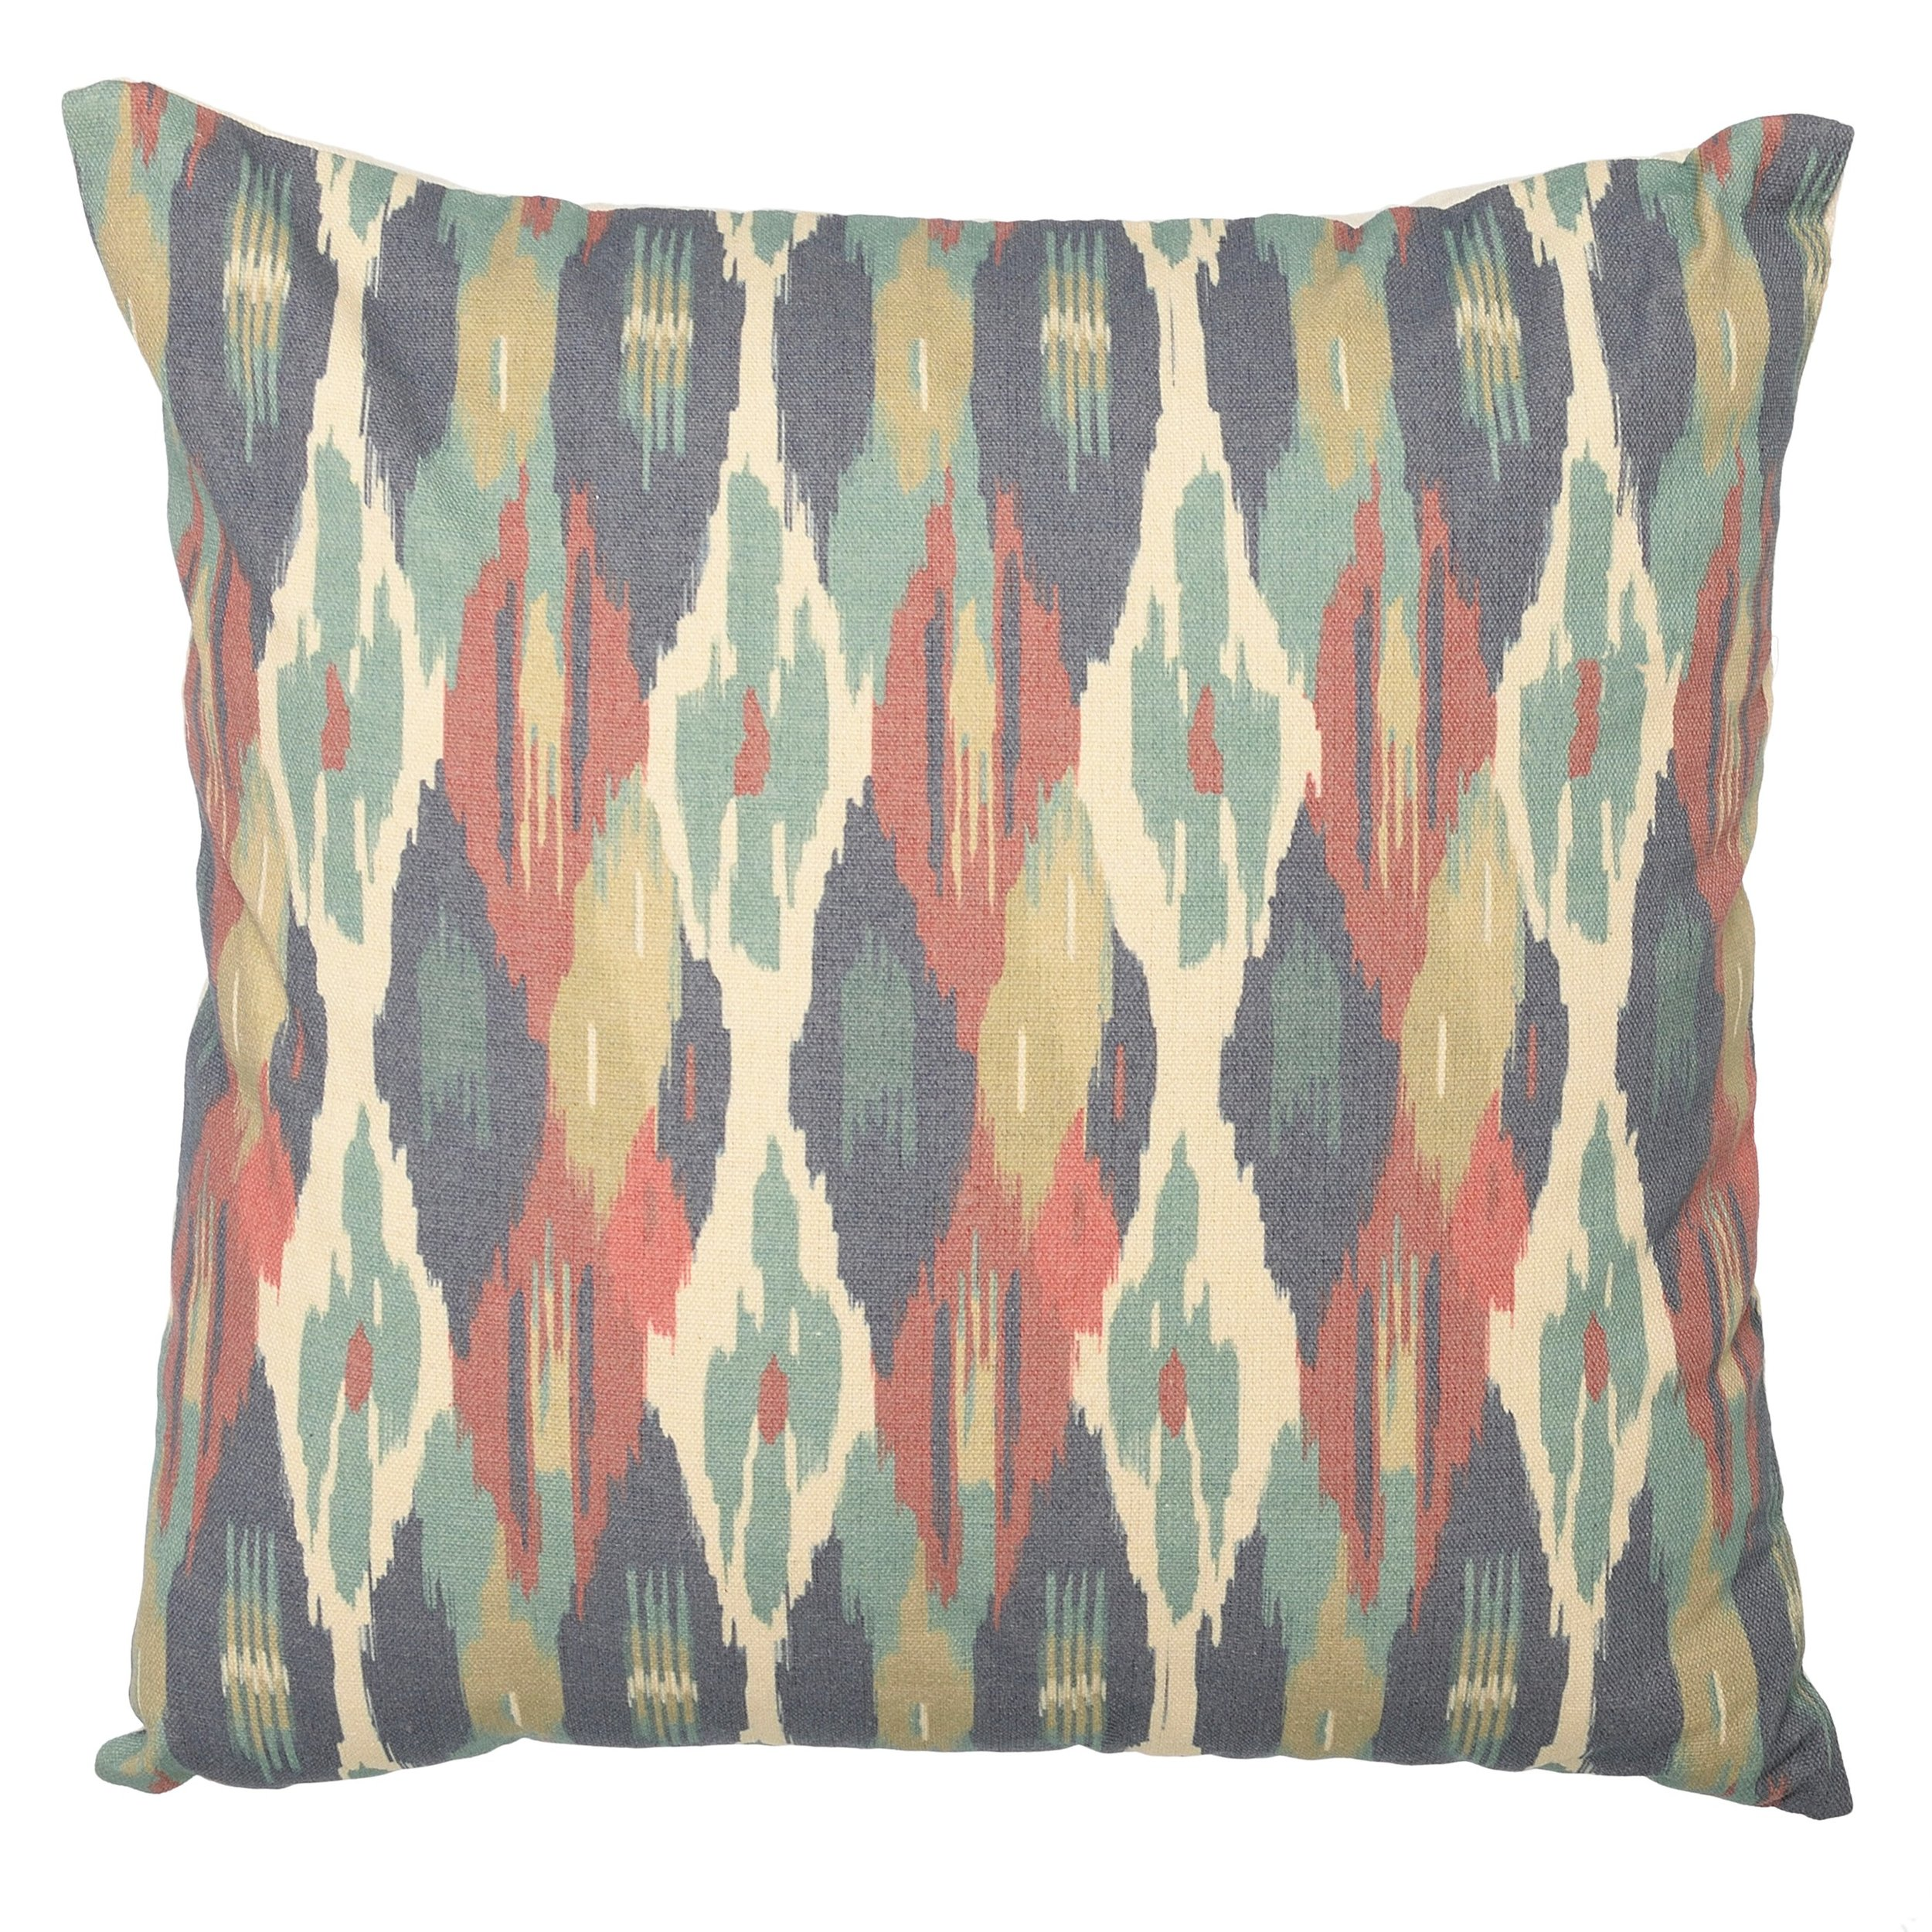 €18 FABRIC FILLING CUSHION IN MULTI COLOR 40X40